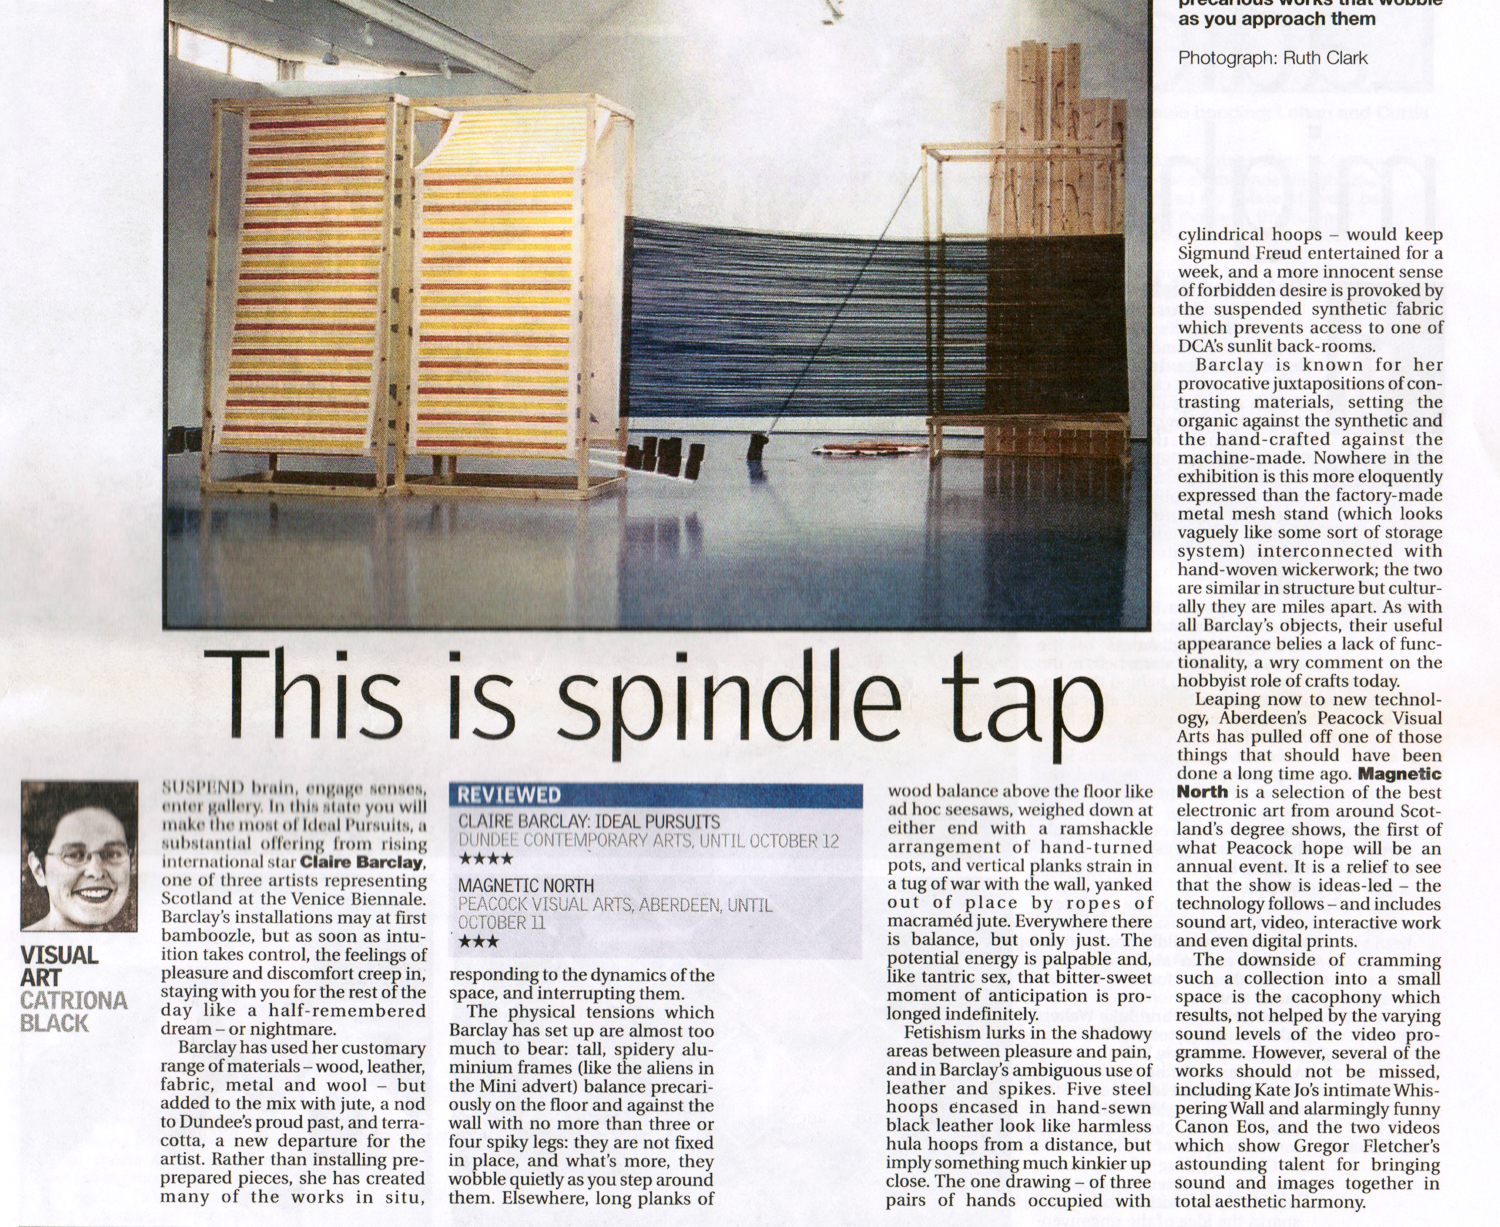 Sunday Herald Magnetic North Review 7 Sept 2003.jpg